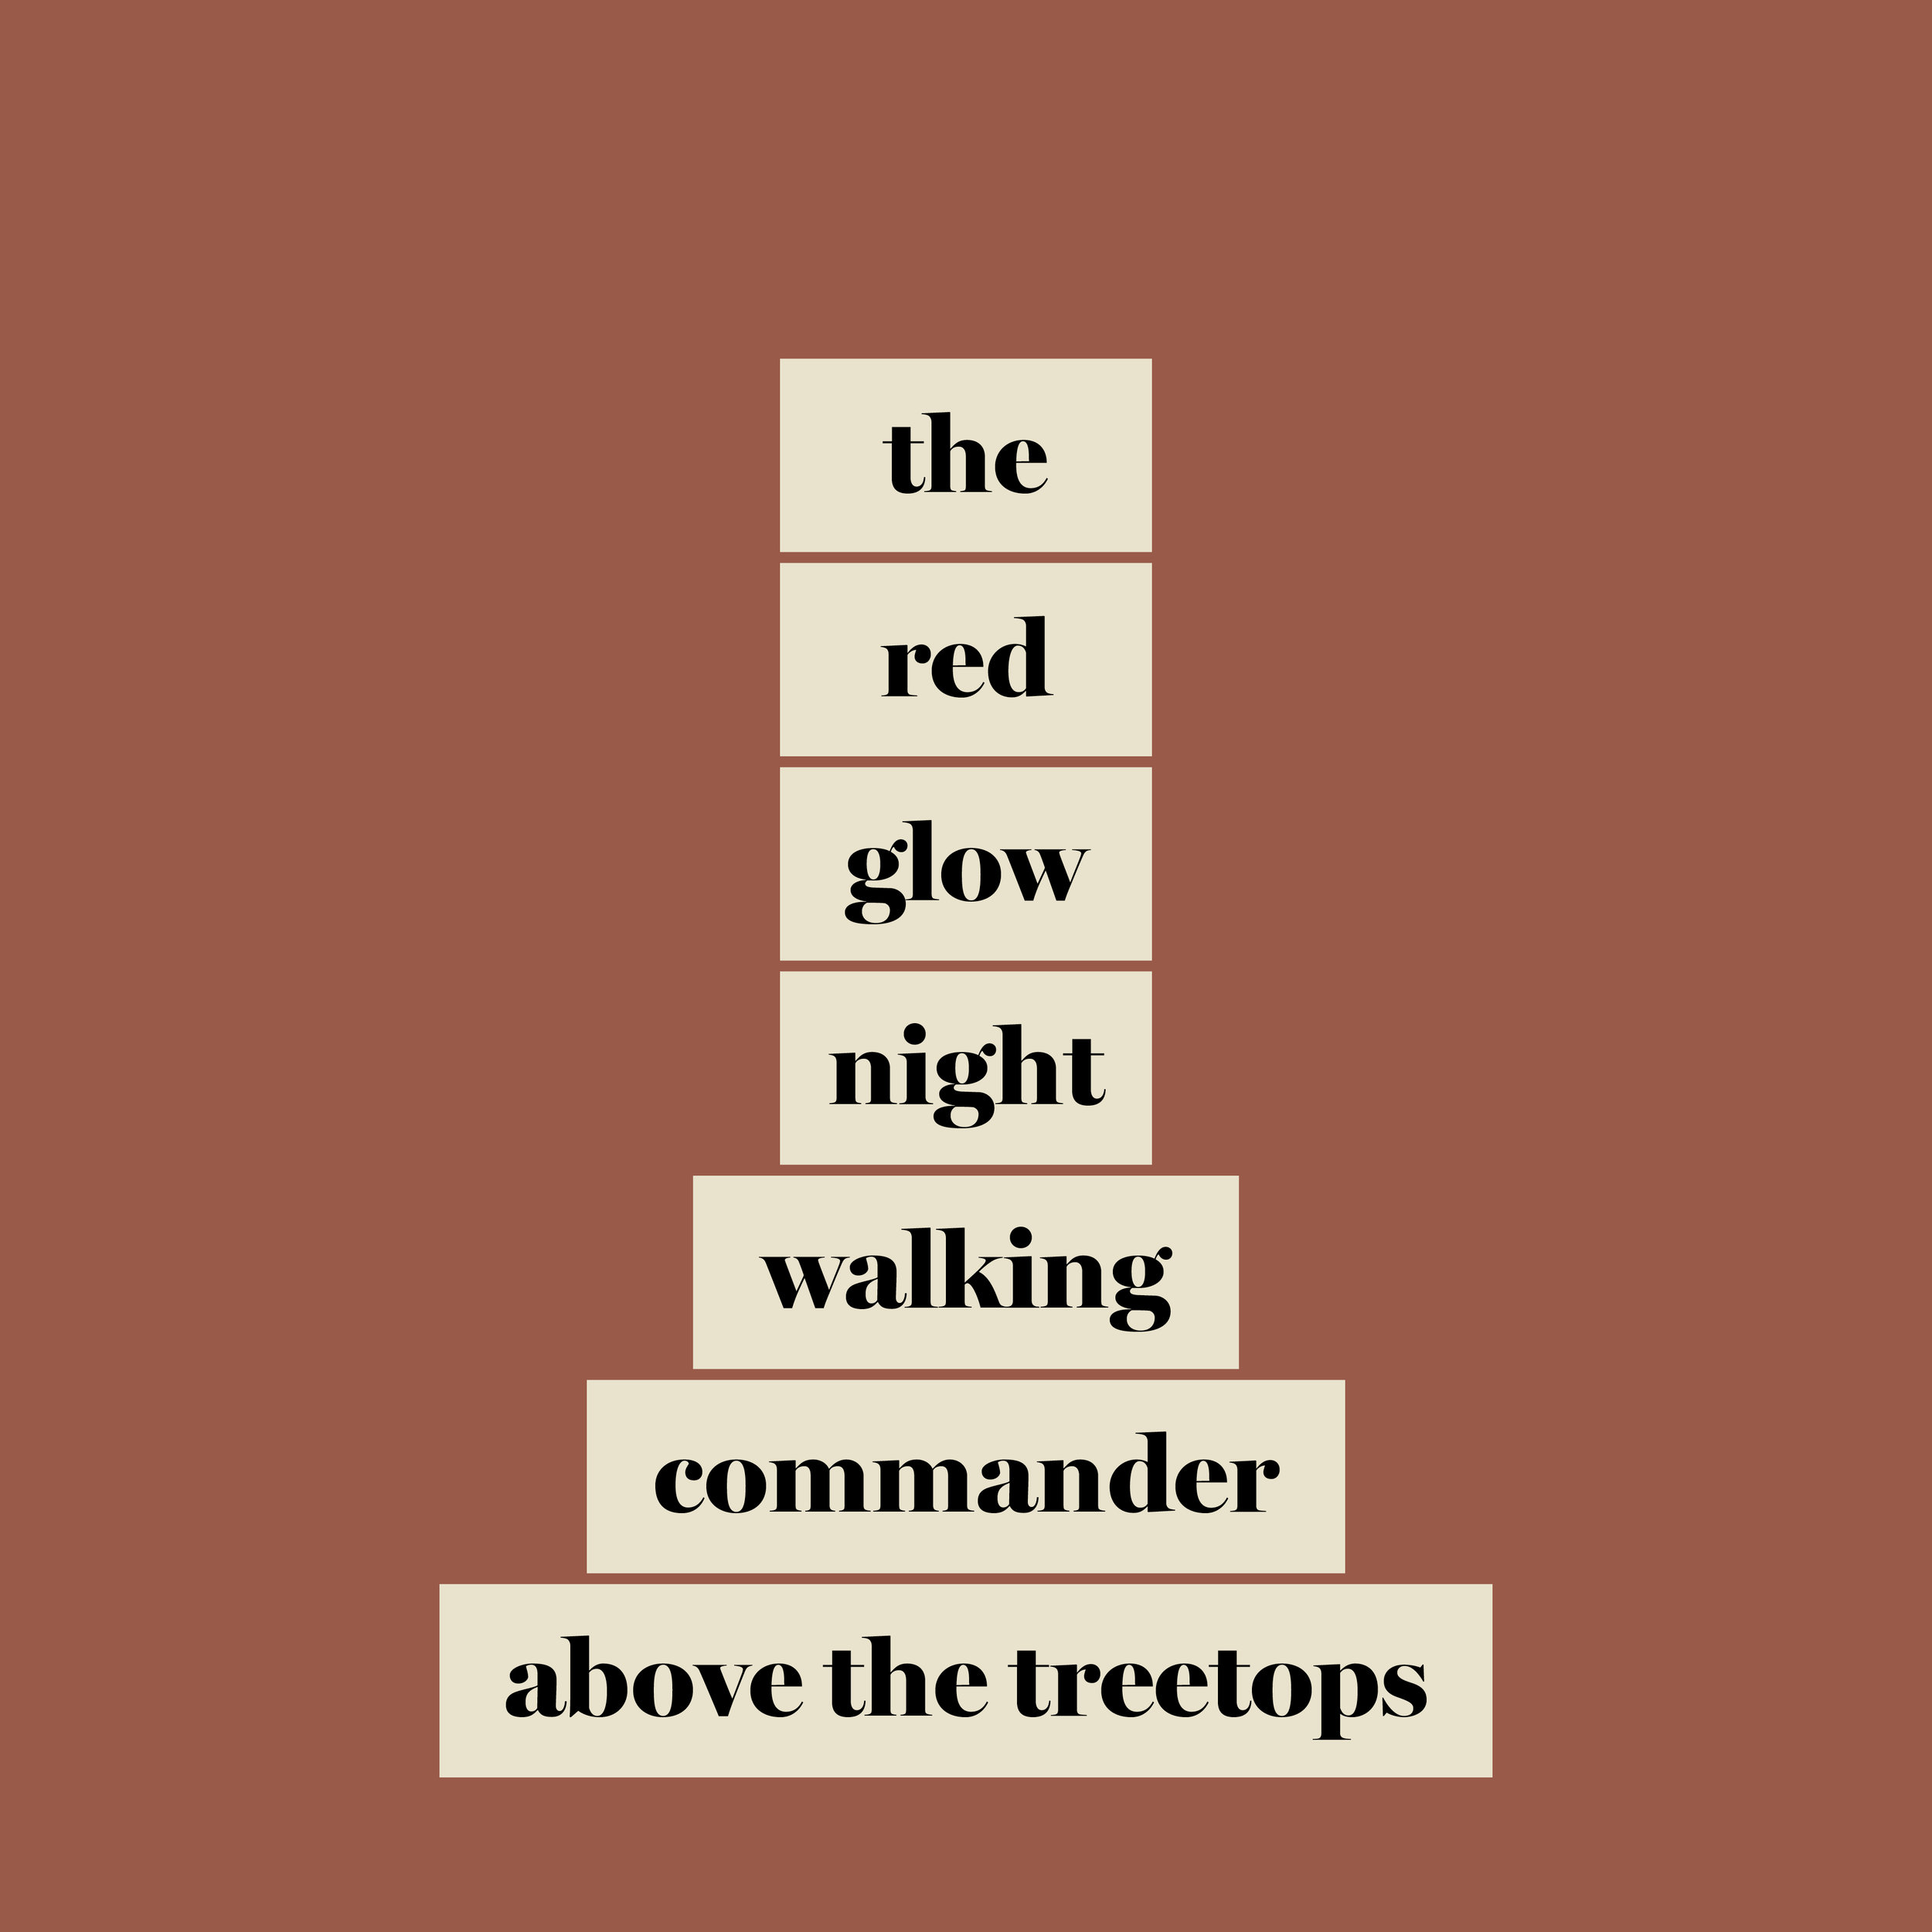 We Were Here, the red glow